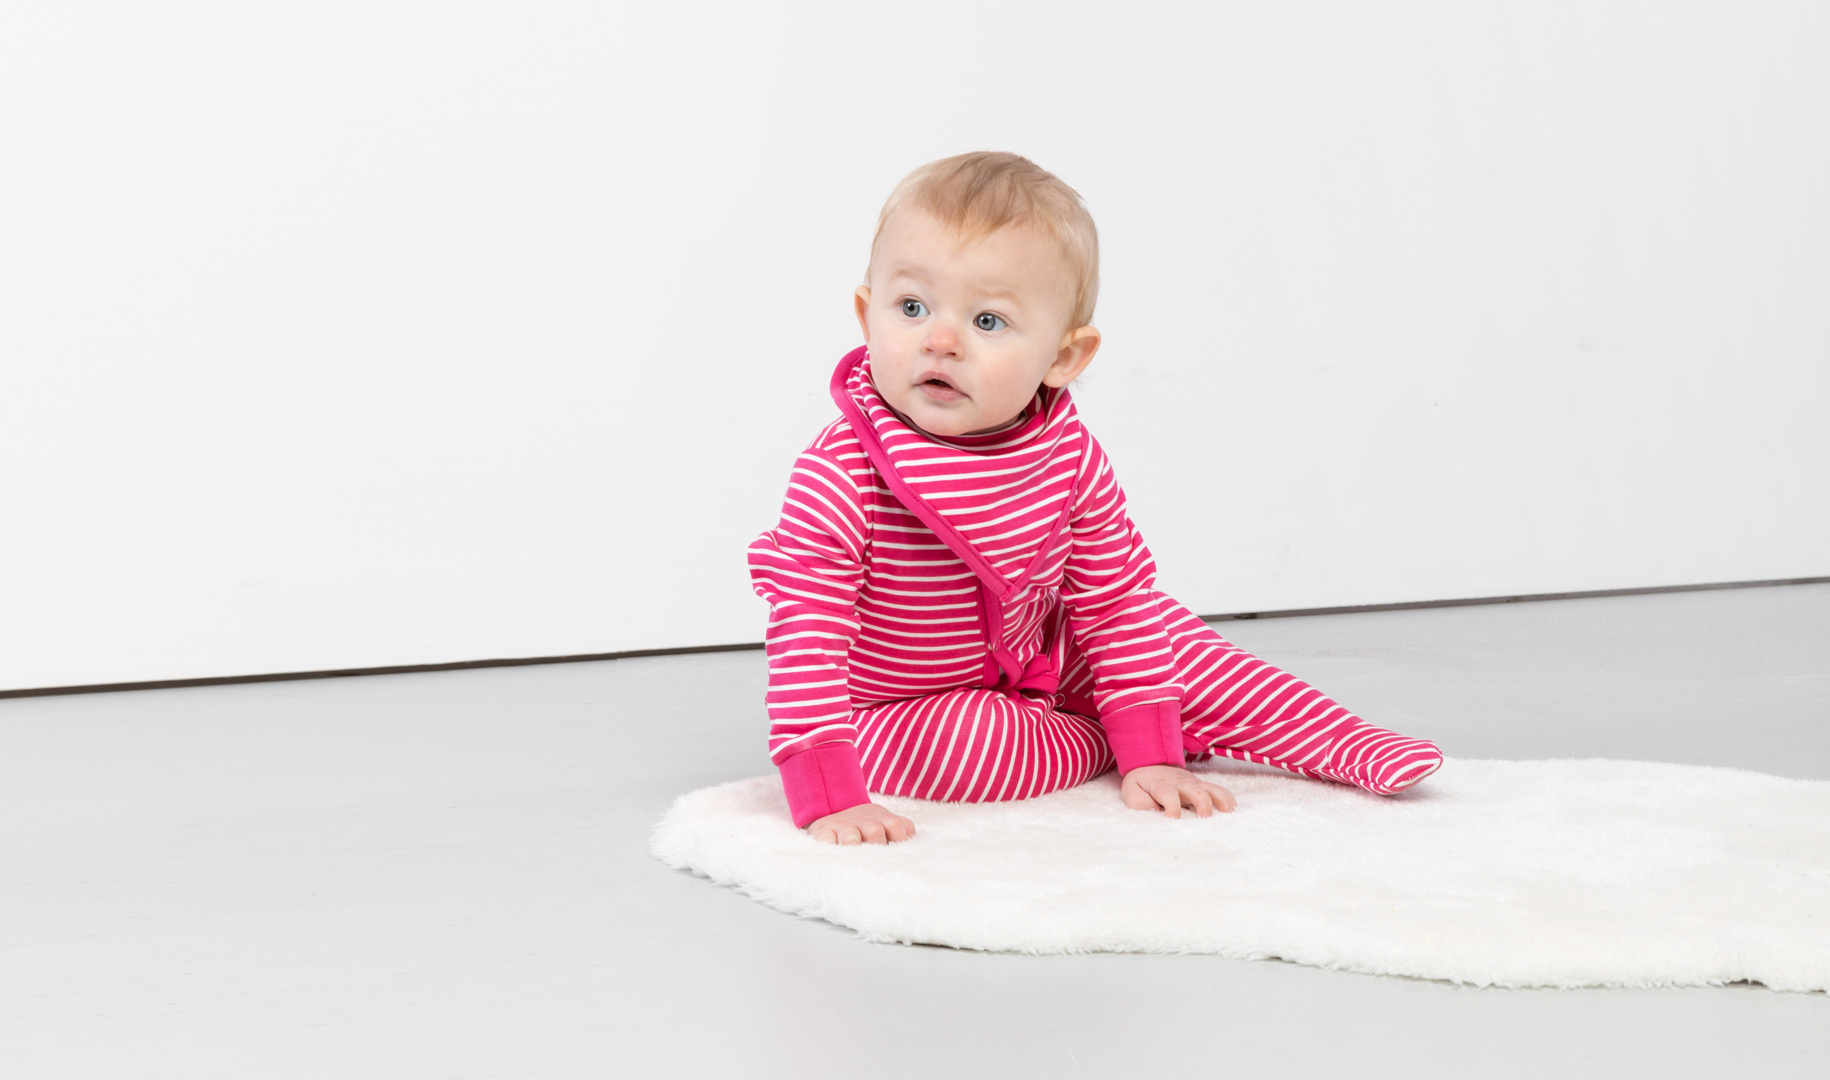 Yorkshire Based Country Clothing Brand Rydale Releases New Baby Clothing Range